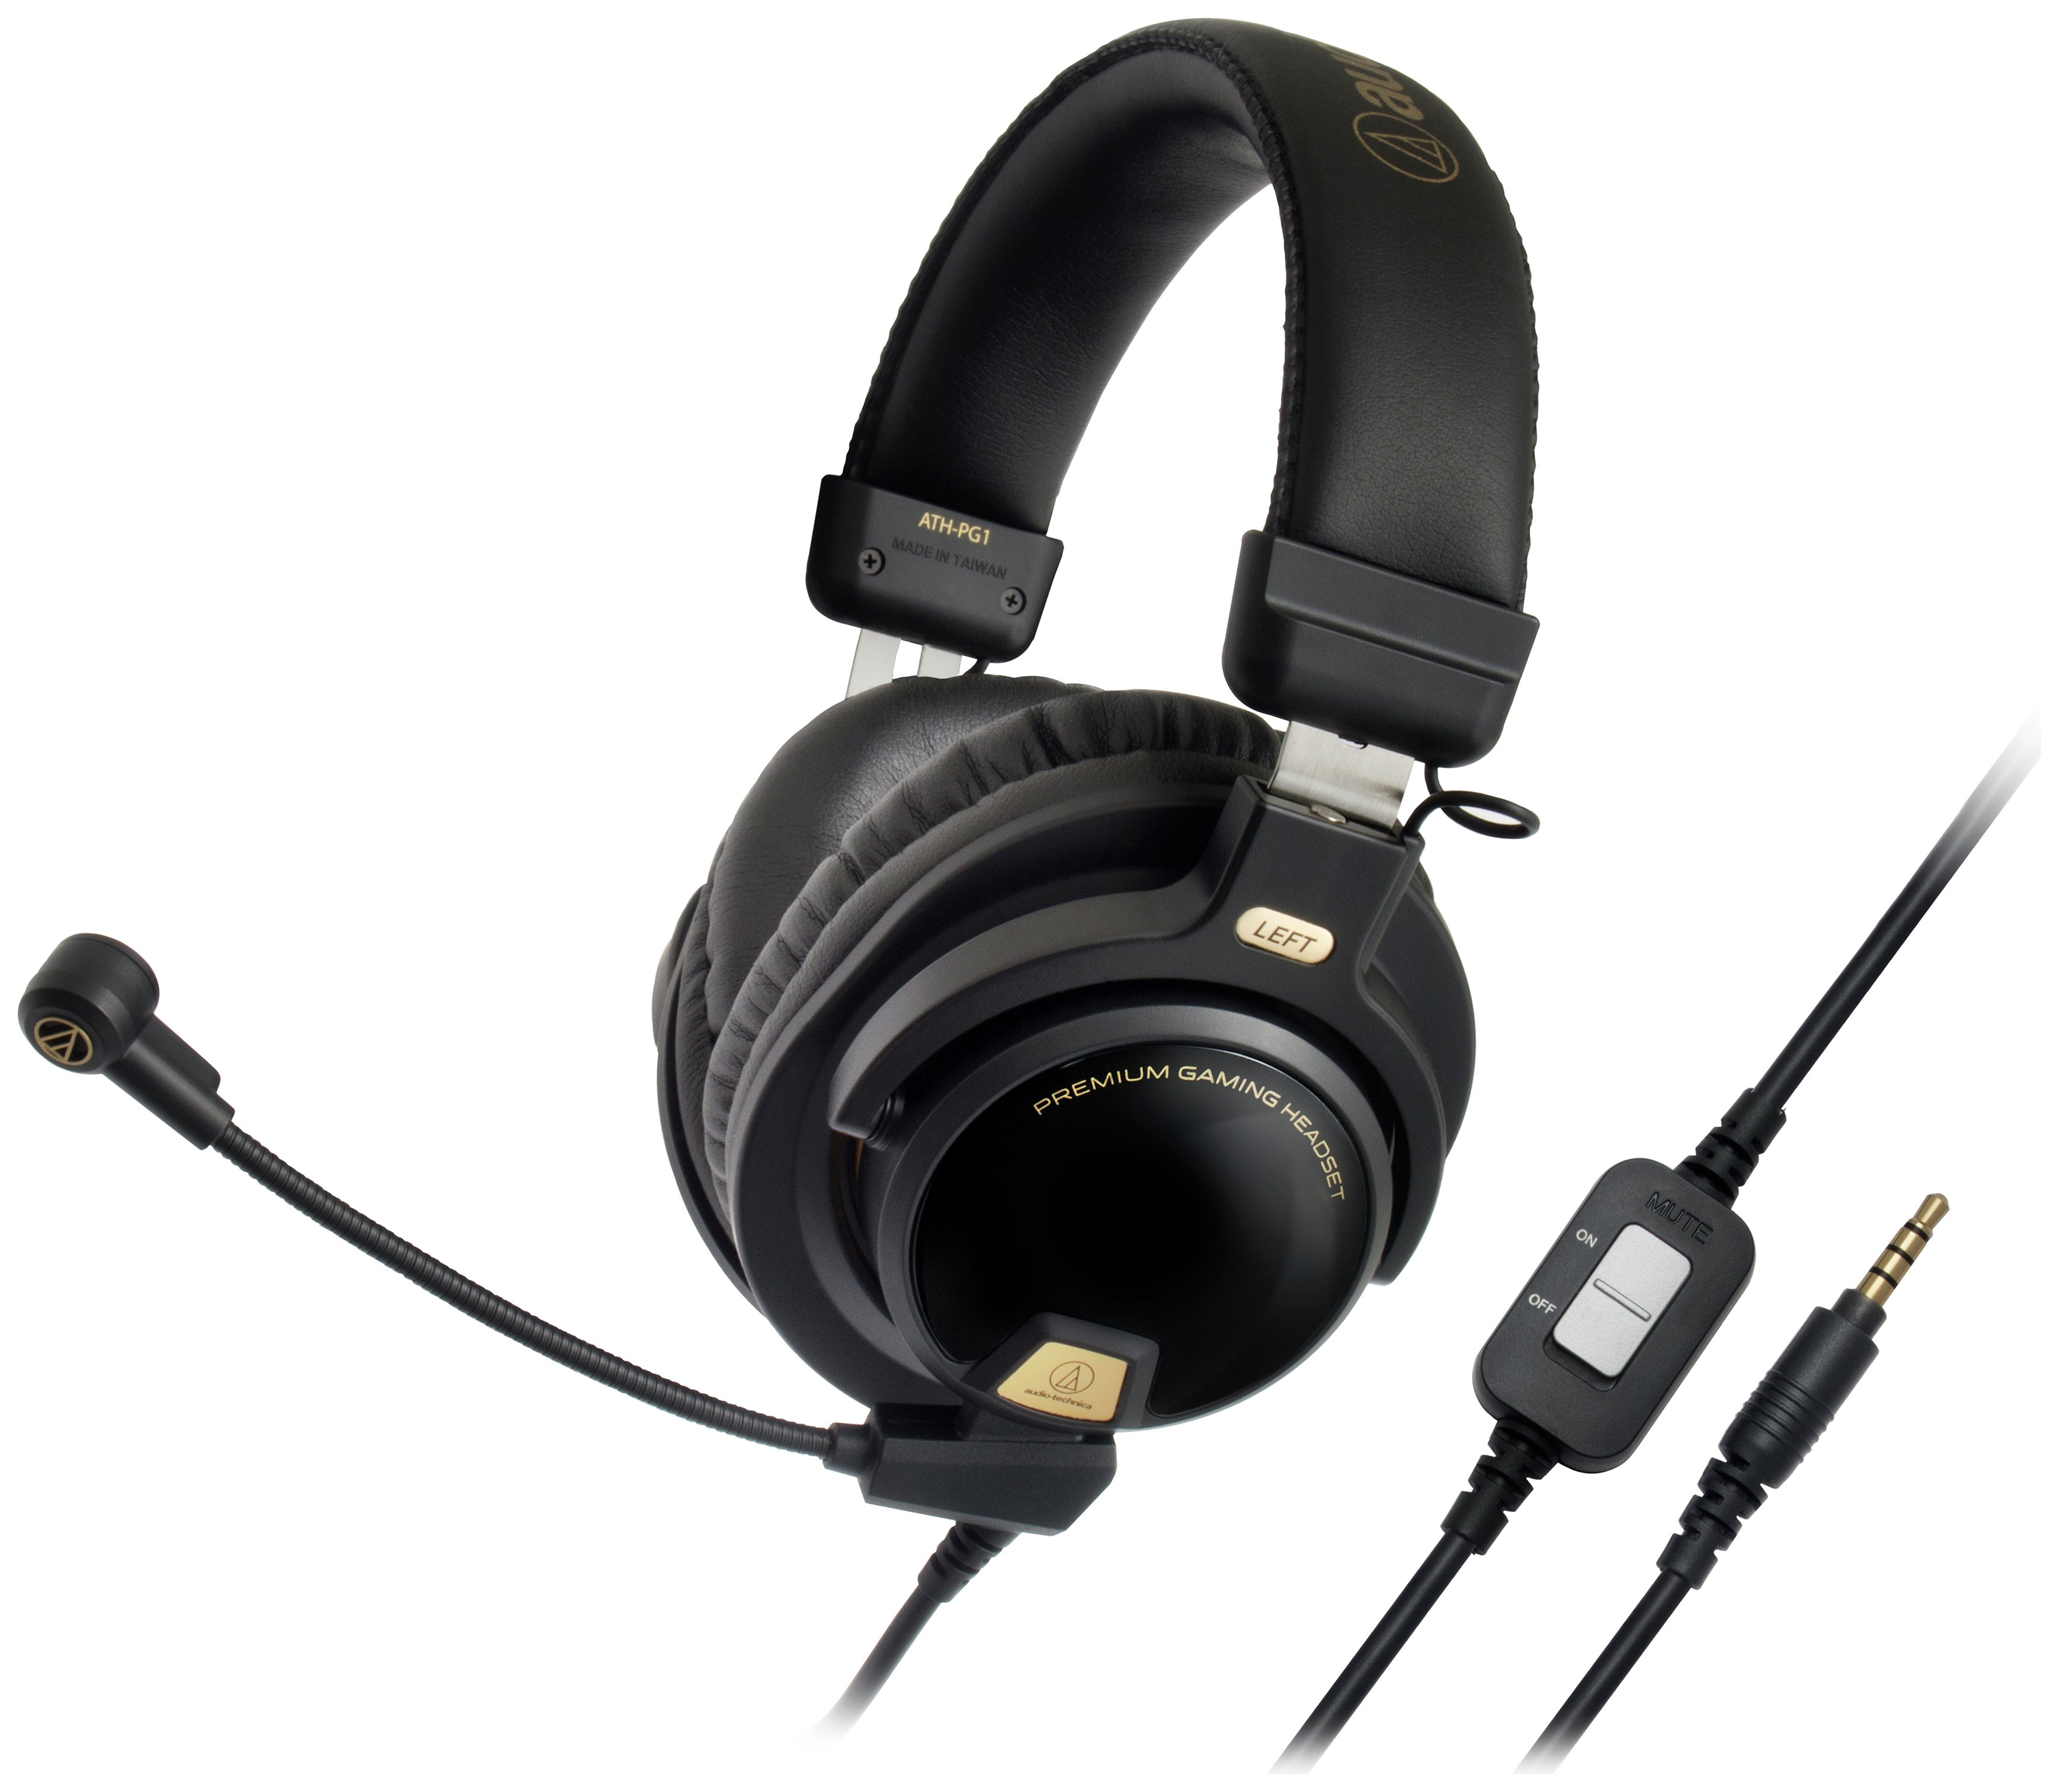 Image of Audio Technica ATH-PG1 Gaming Headset - Black/Gold.